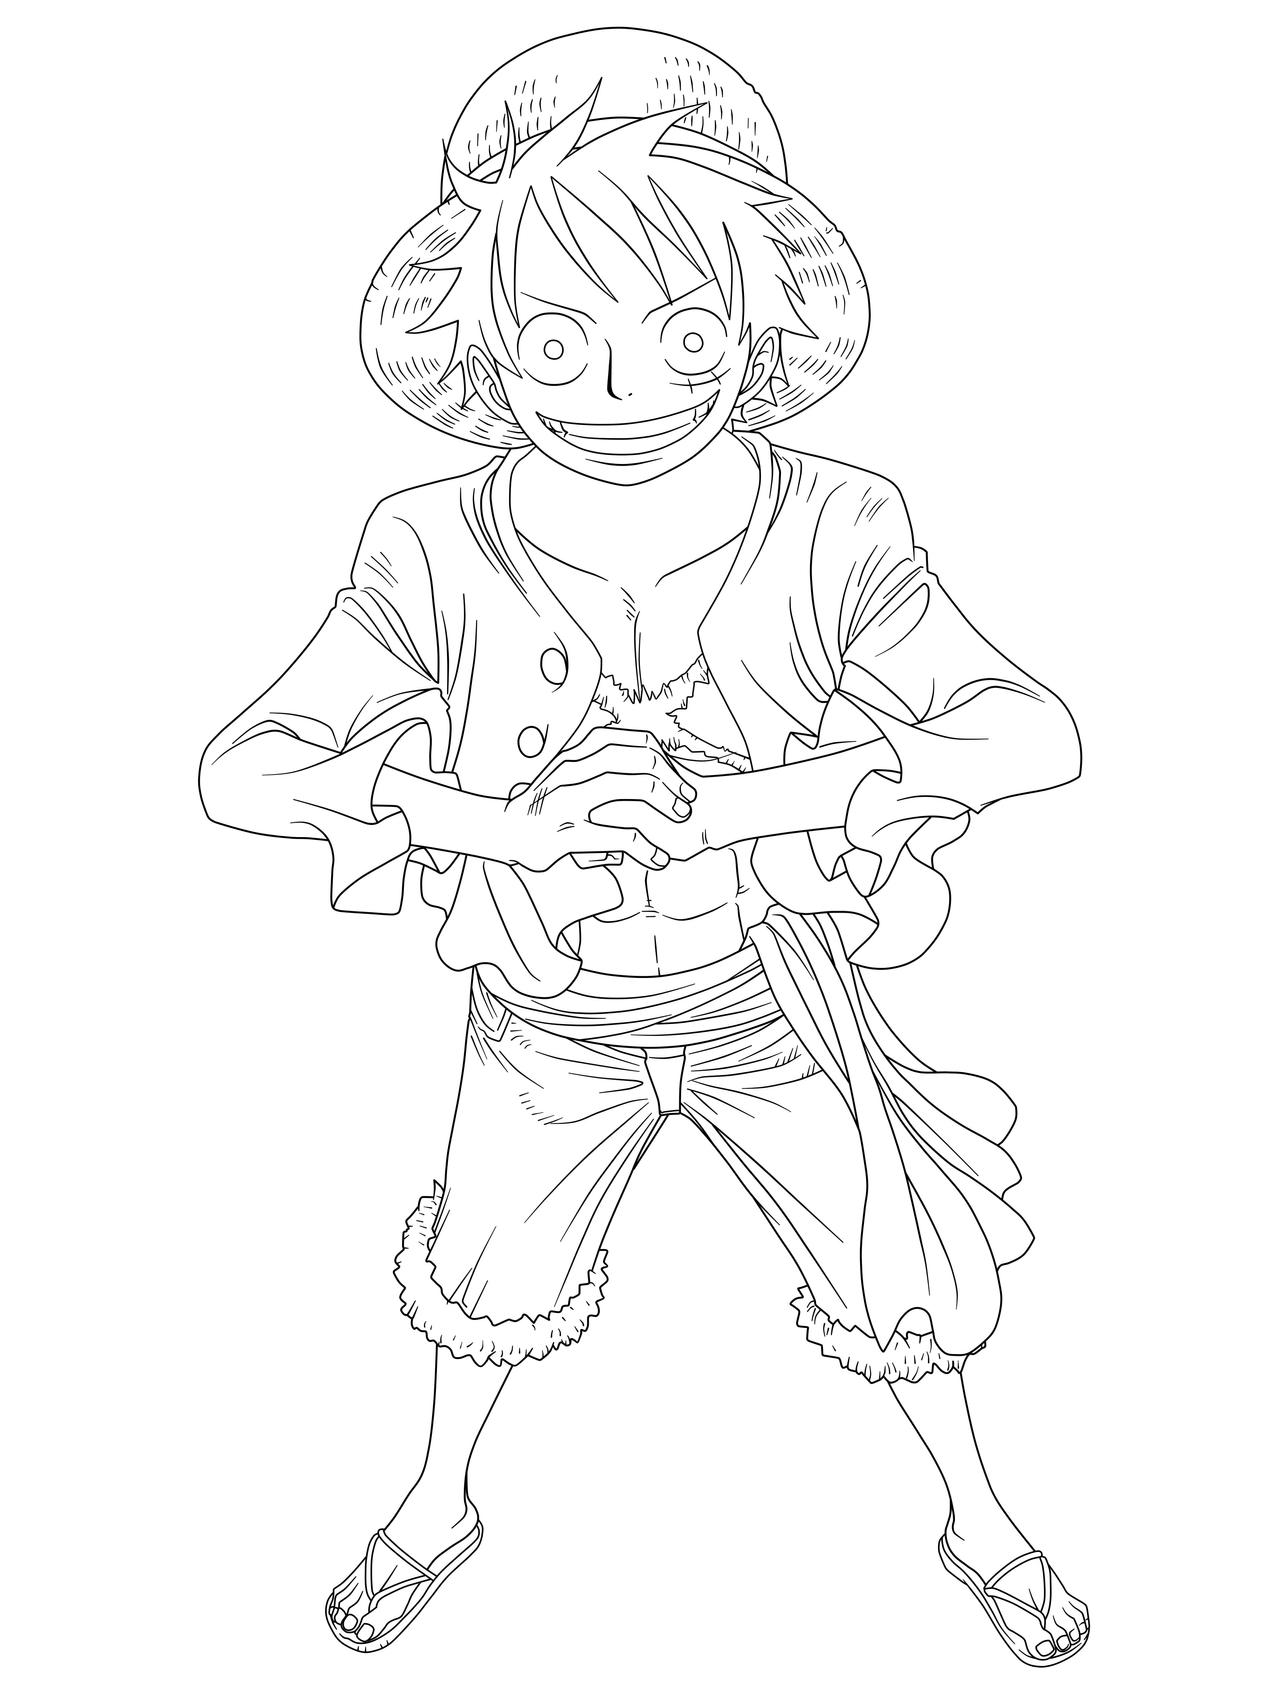 Luffy Lineart : Luffy lineart by srmoro on deviantart